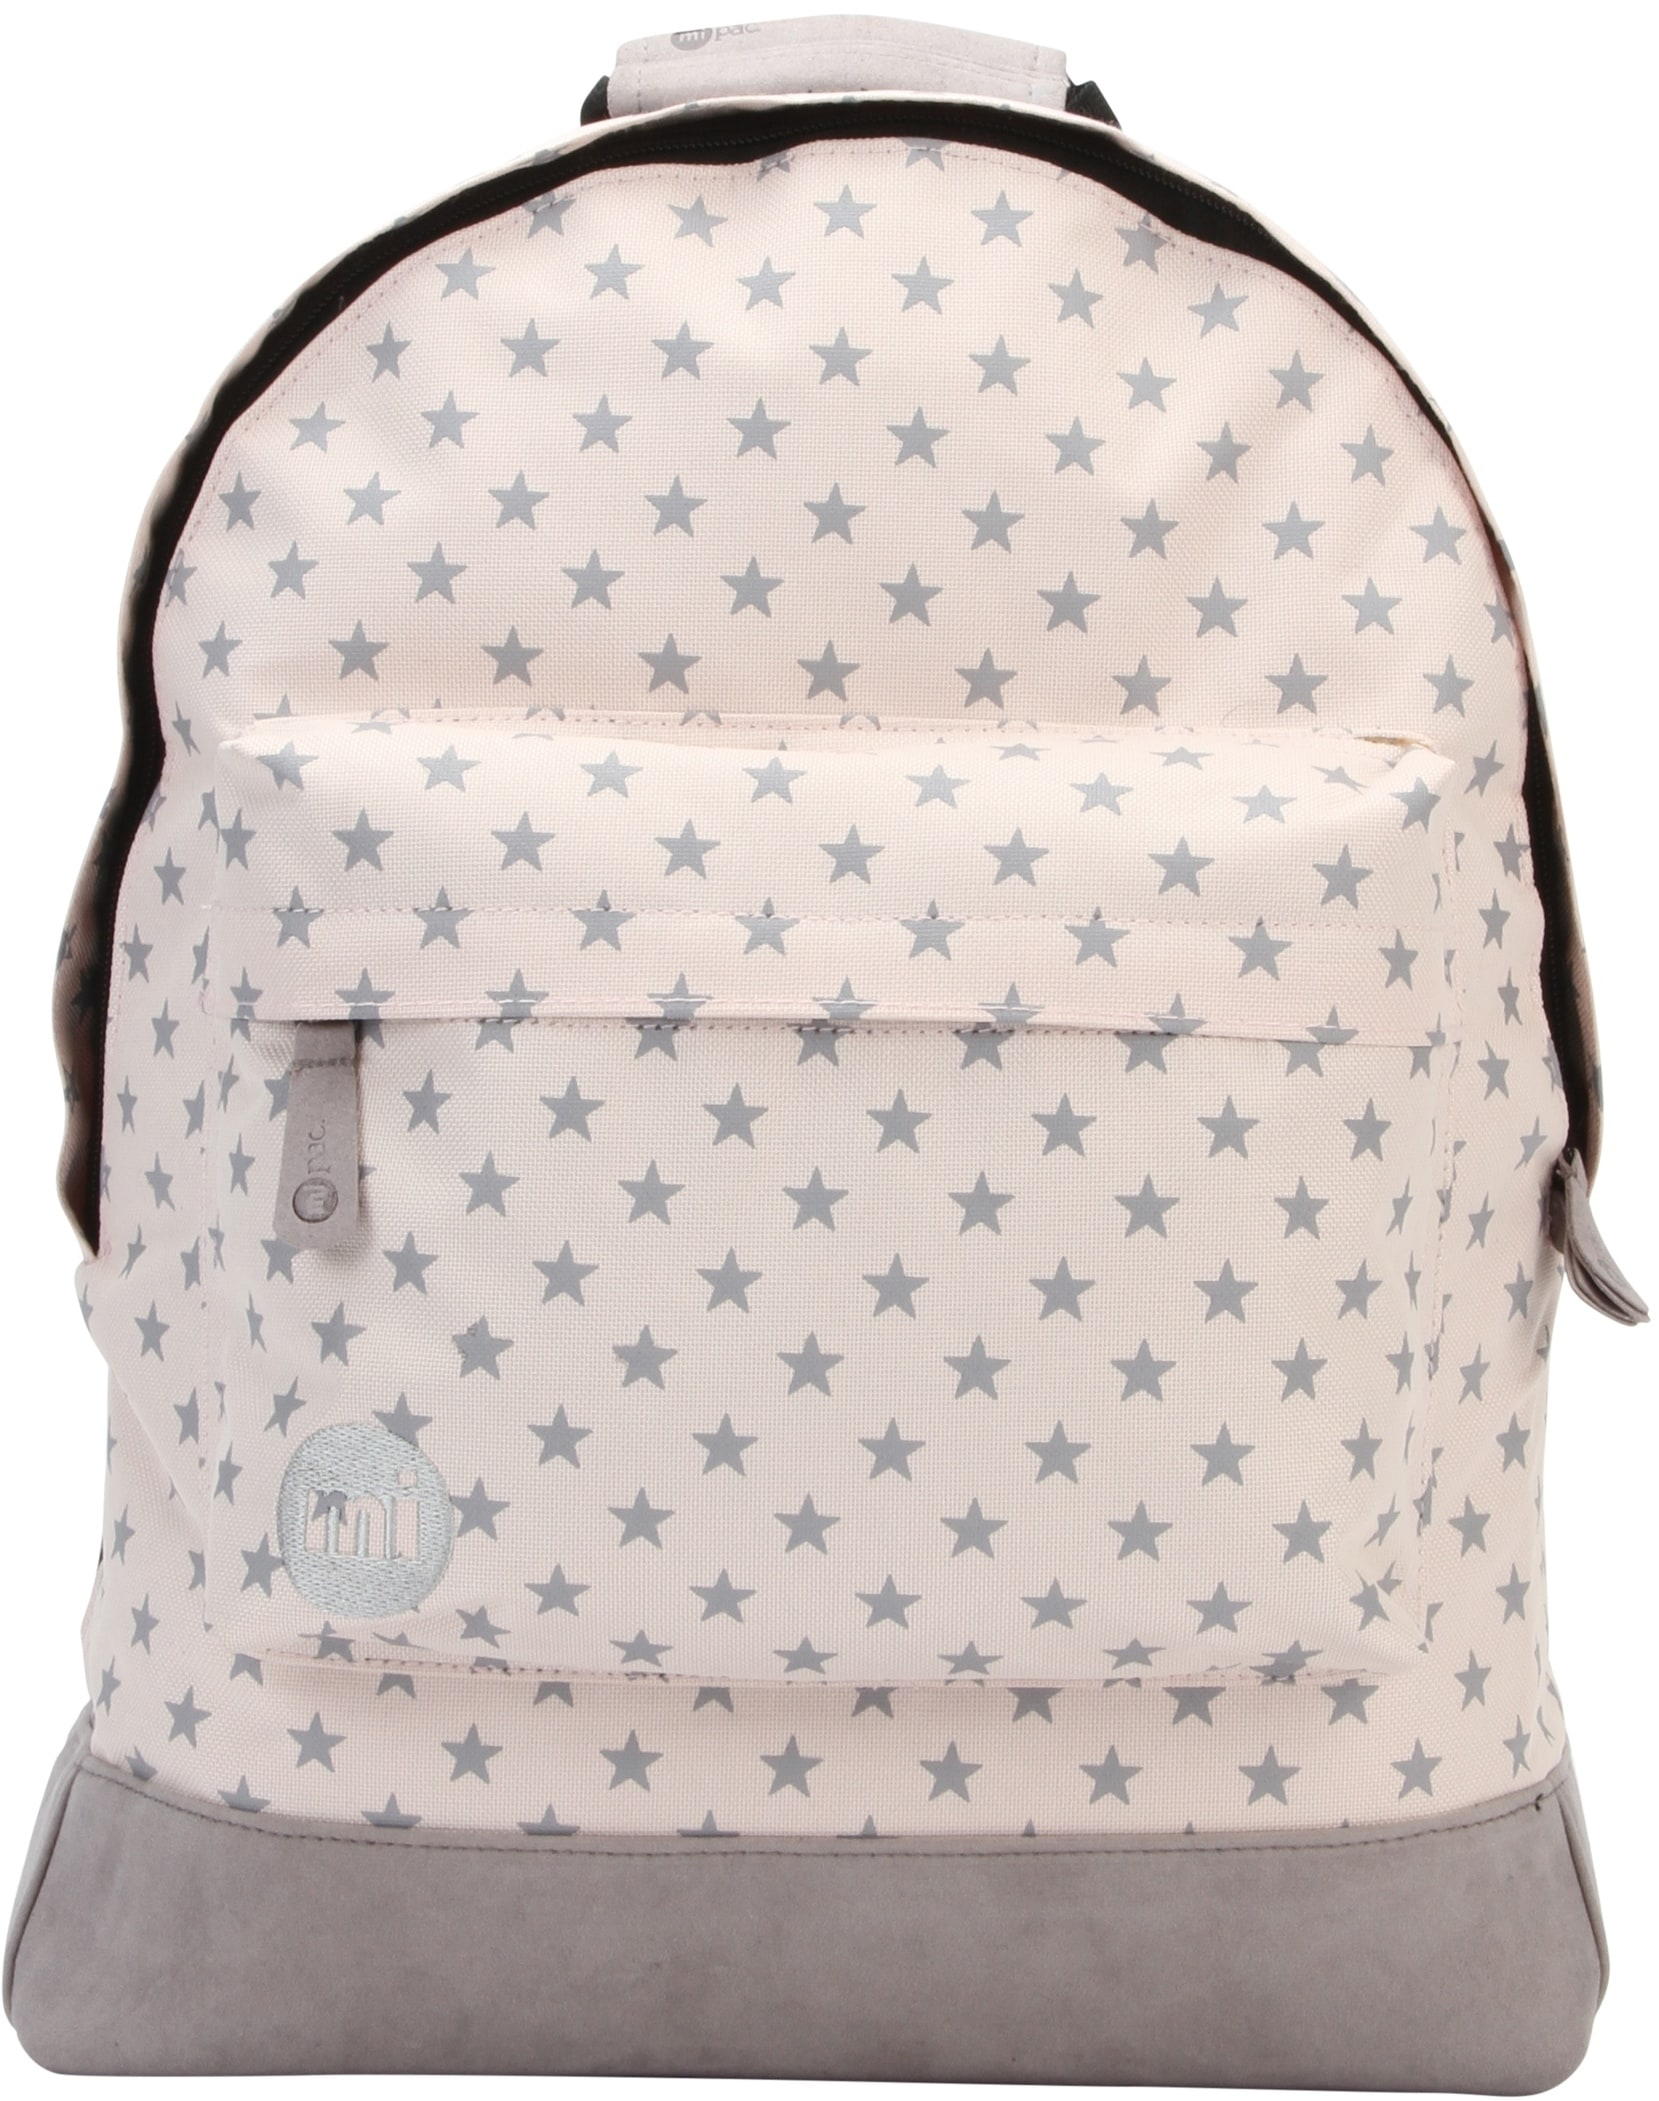 MiPac All Stars Backpack  PeachGrey